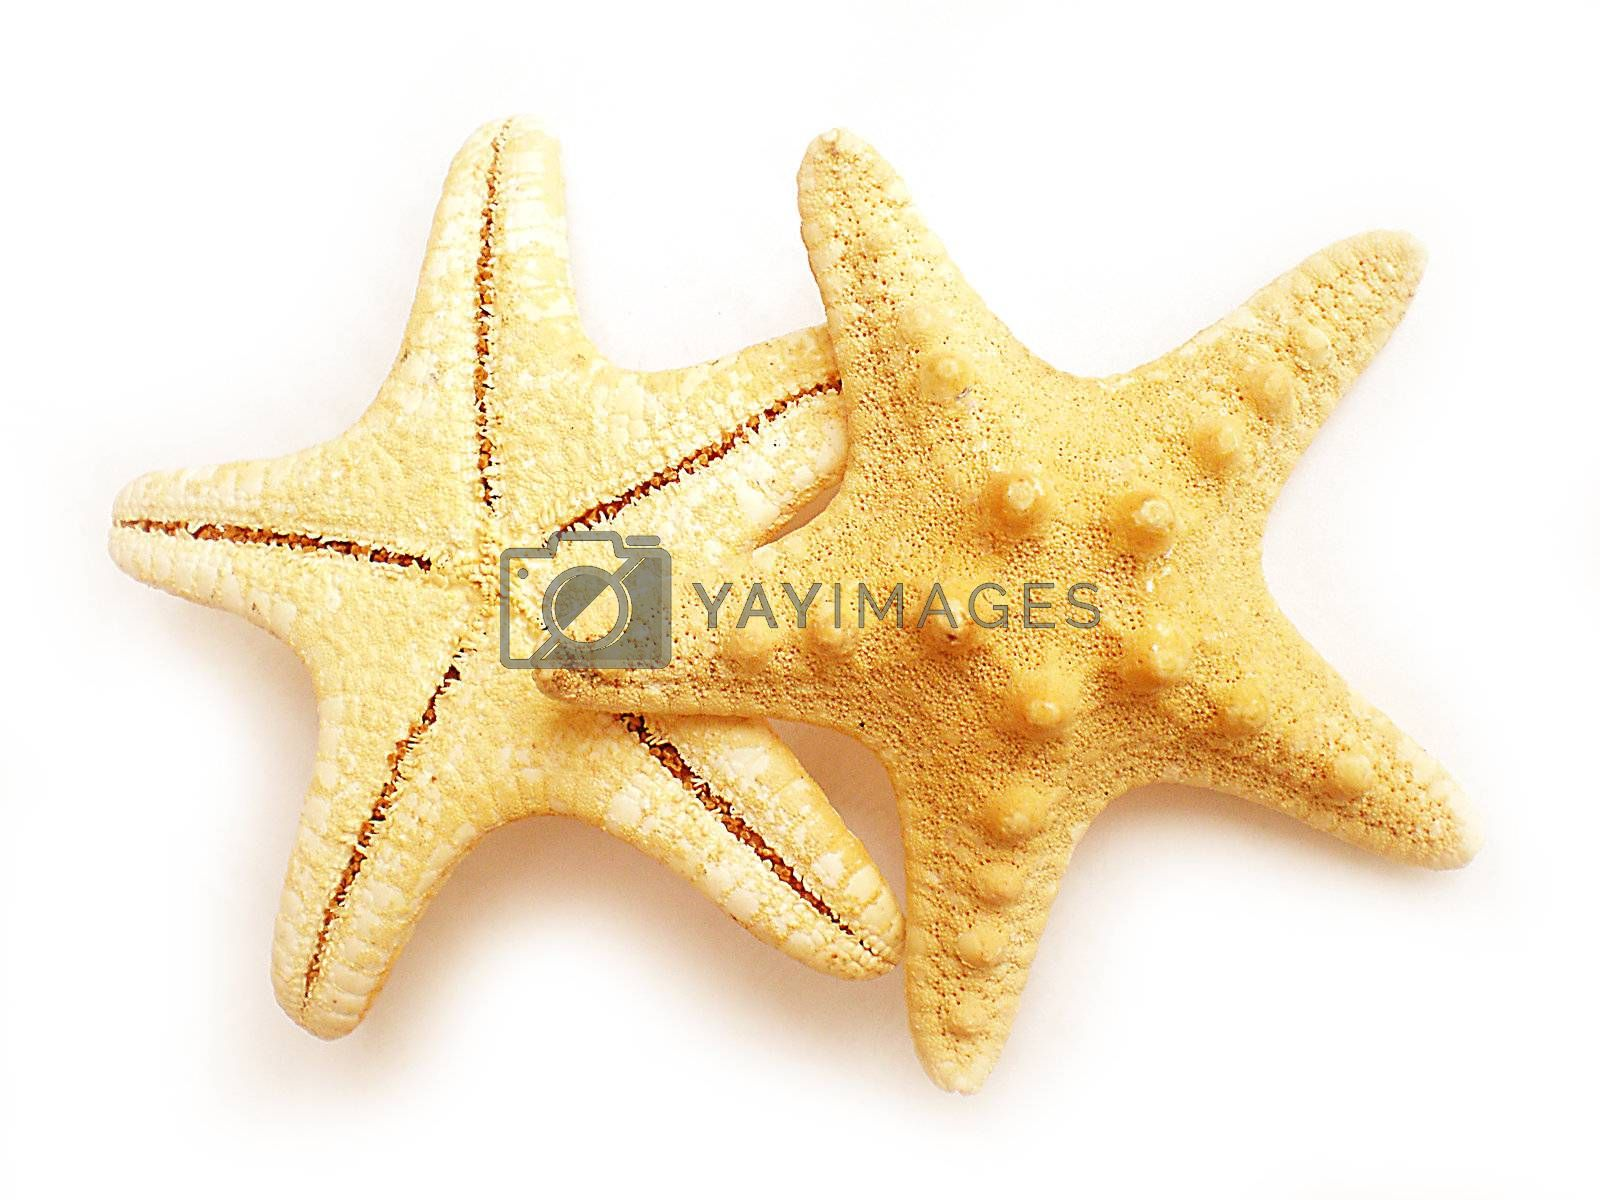 Royalty free image of starfish by Dessie_bg